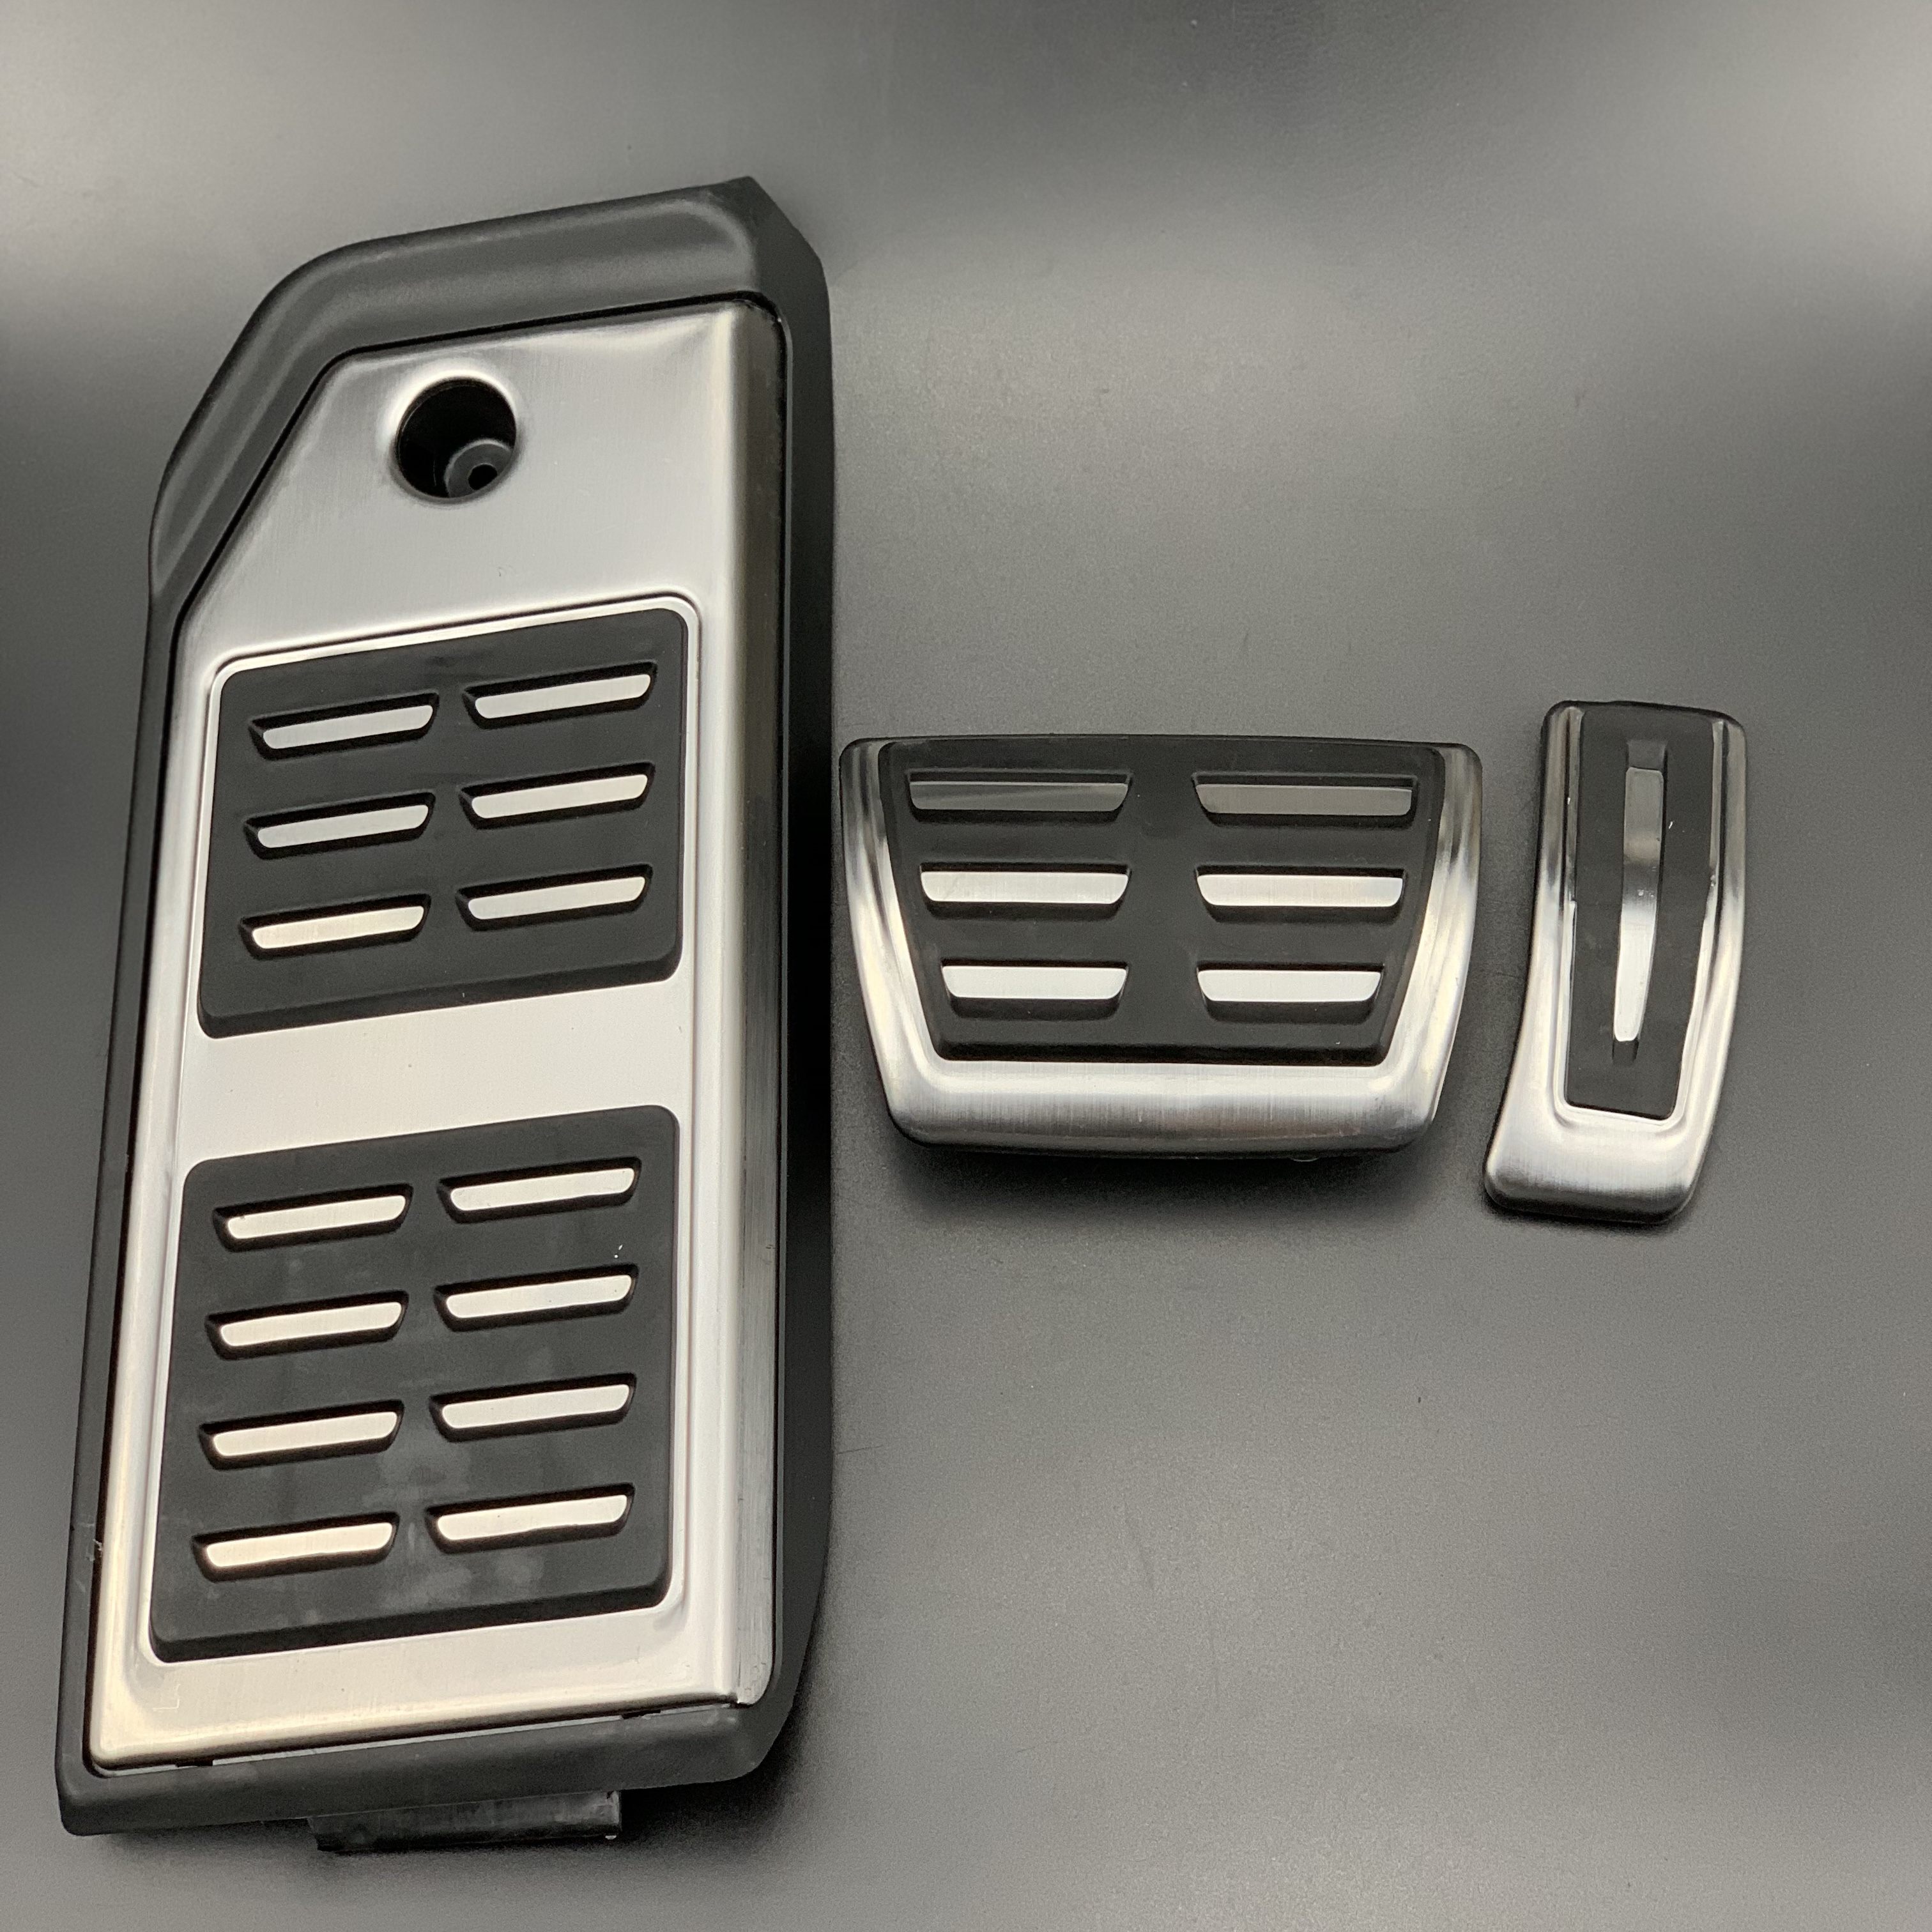 For Audi Q7 Q8 For Porsche Cayenne Fuel Brake Foot Rest pedals Plate Accelerator brake pedal stickers styling Car accessories